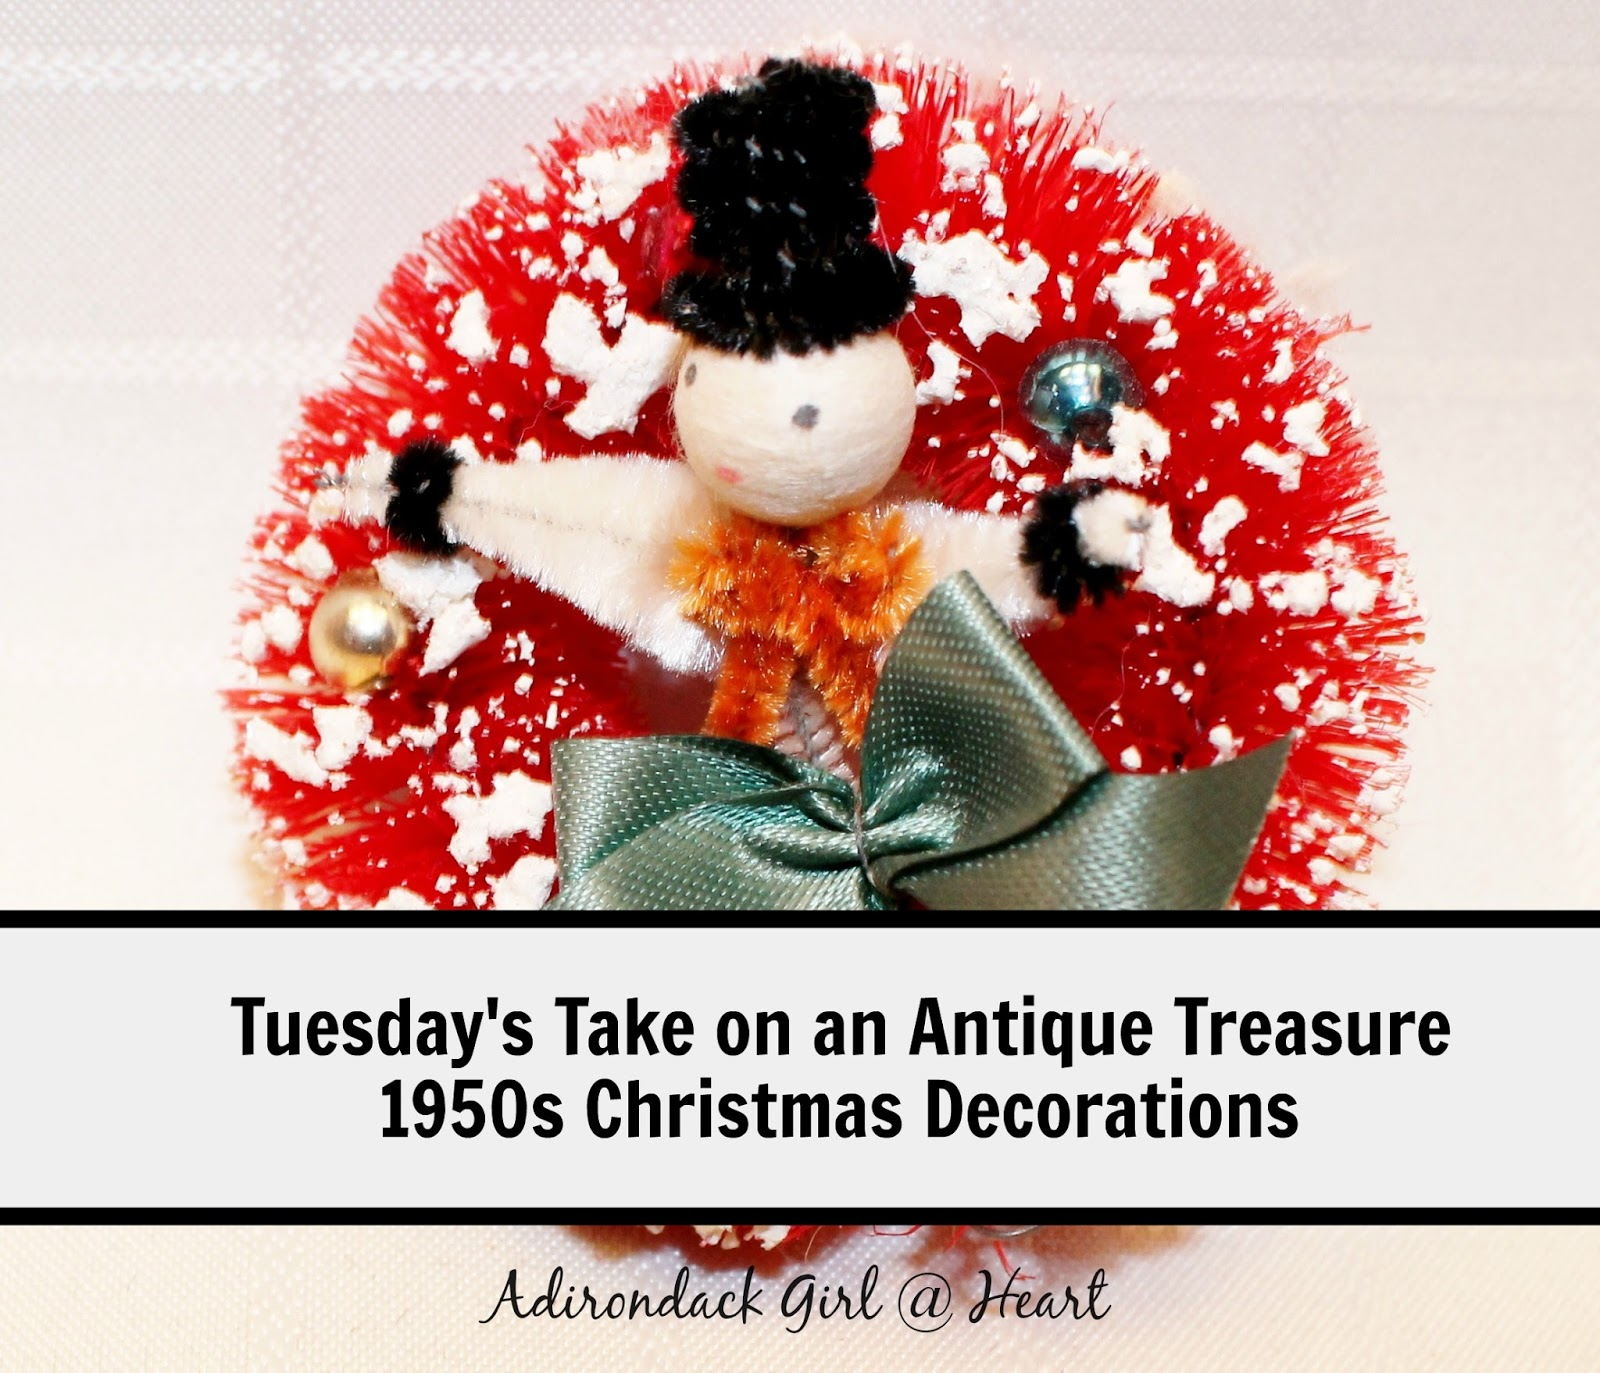 Tuesday's Take on an Antique Treasure: 1950s Christmas Decorations